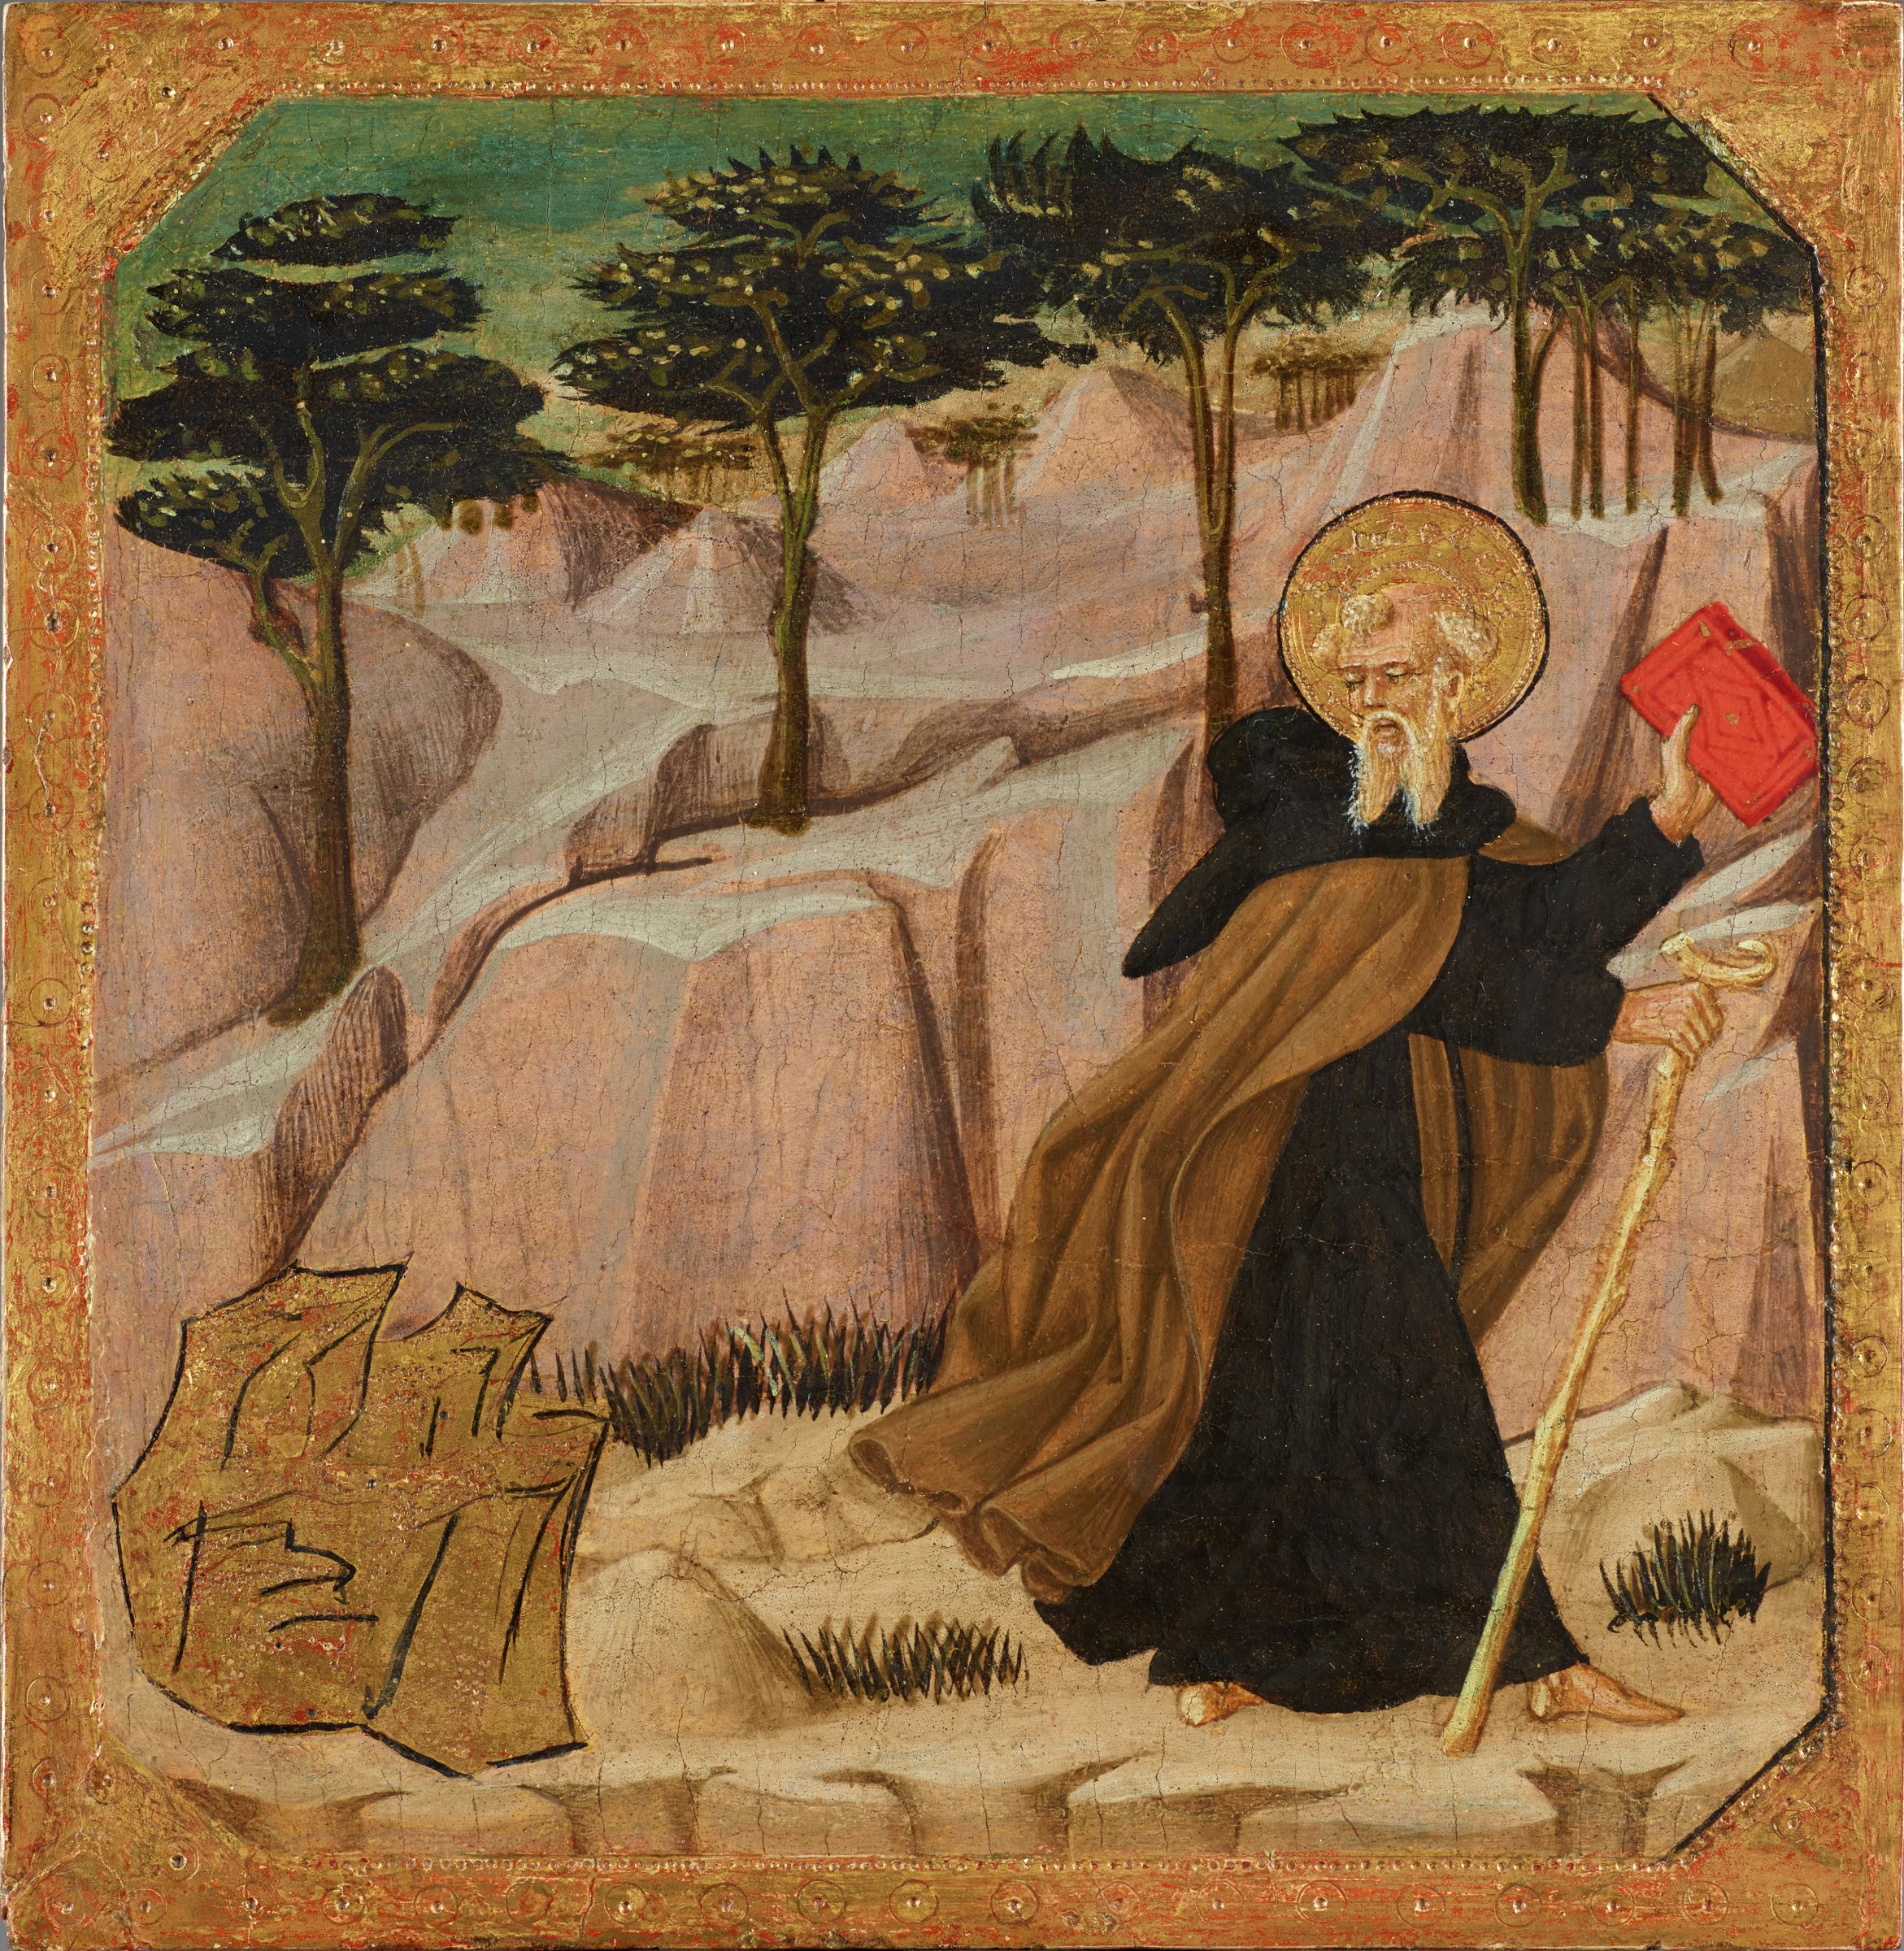 Saint Anthony Abbott comes upon a large piece of gold on his walk through a rocky landscape. He looks at it while trying to pull himself away.